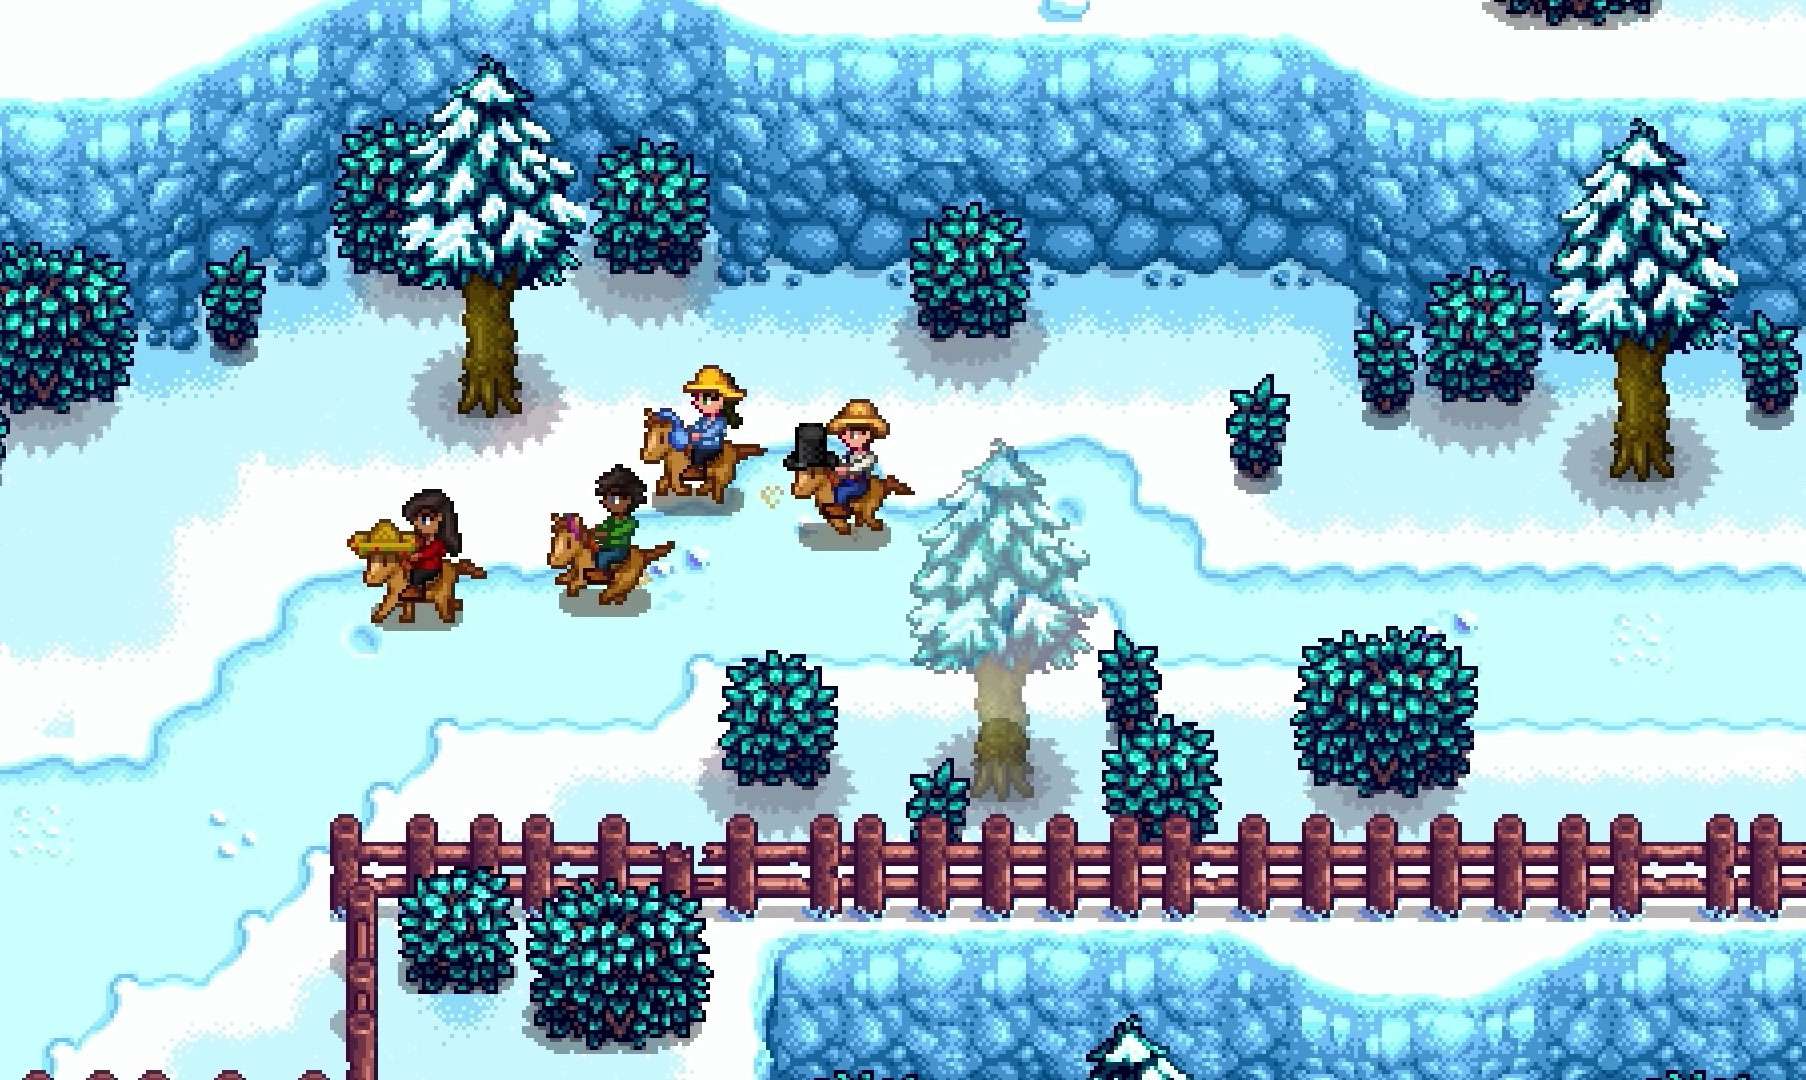 Multiplayer is coming to 'Stardew Valley' on PC, Mac and Linux